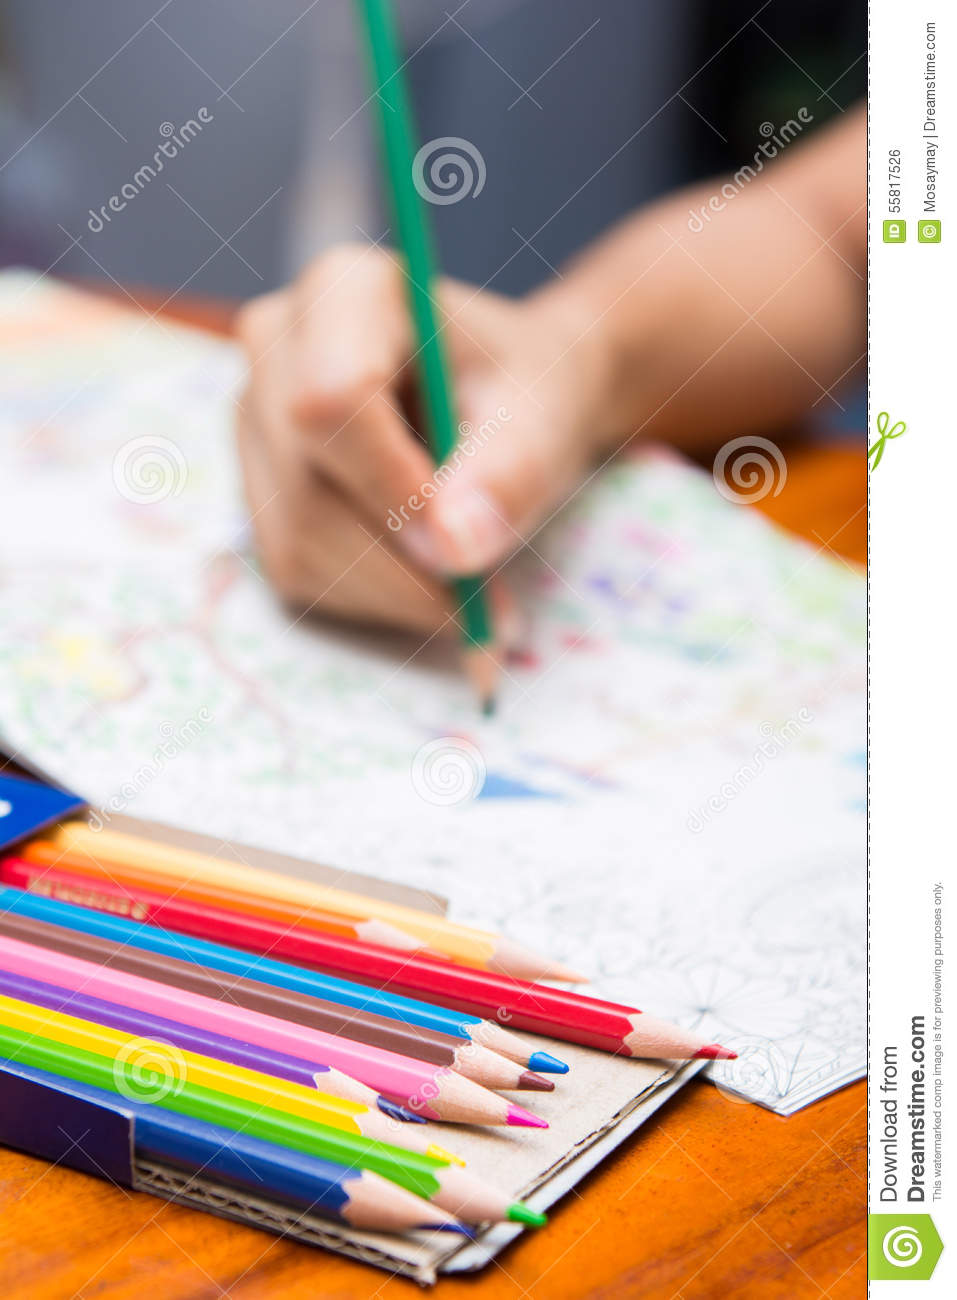 The Girl Is Painting On Coloring Books Stock Photo - Image of paper ...